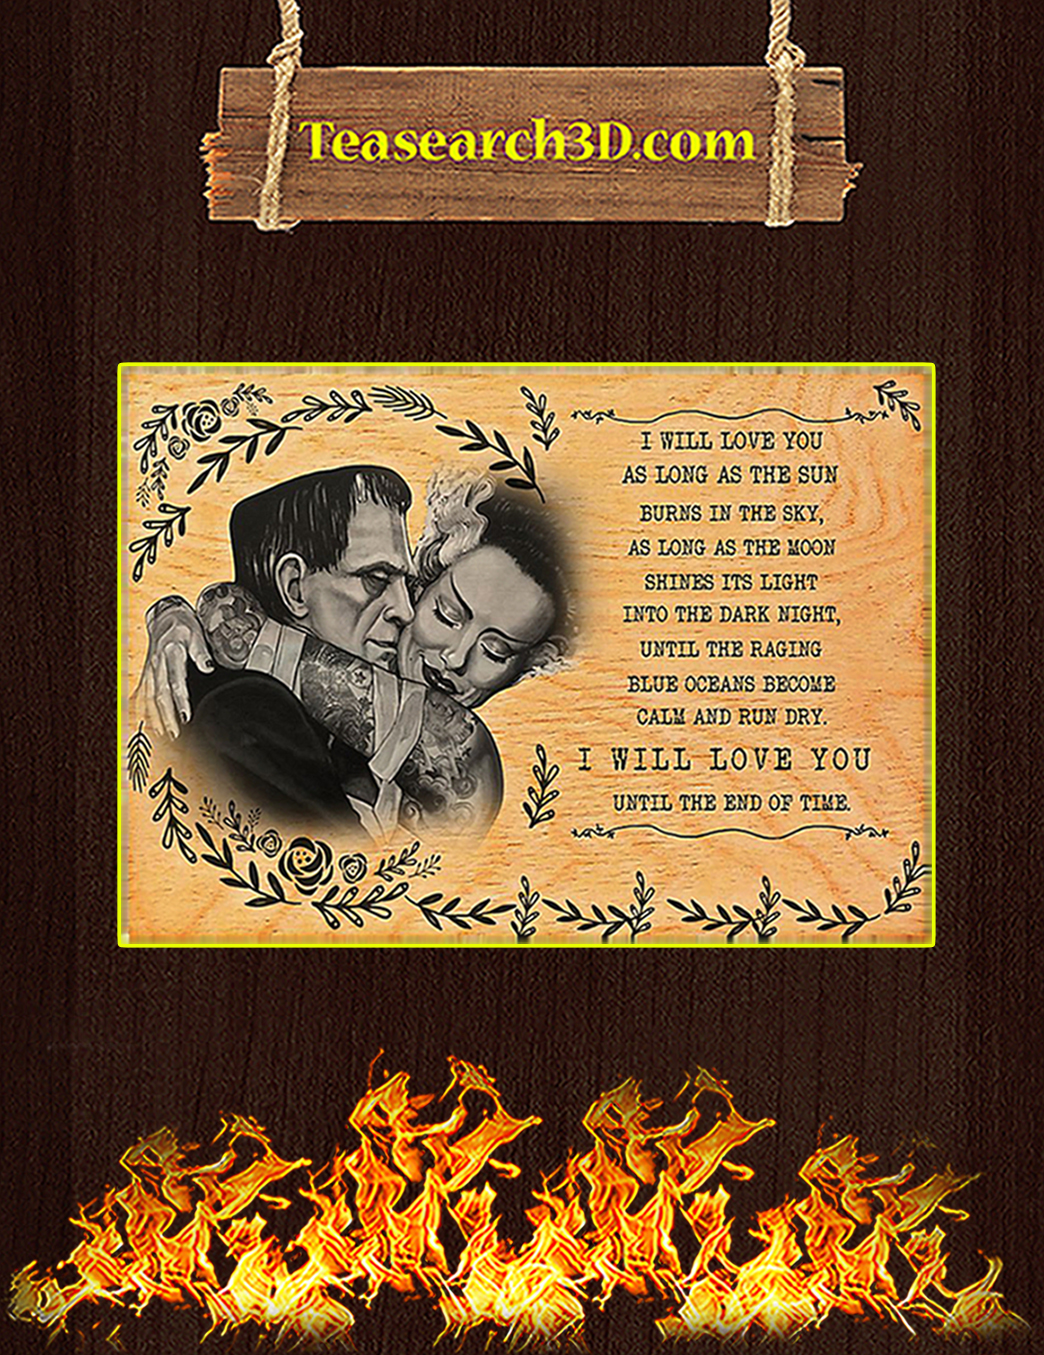 Frankenstein I will love you as long as the sun poster A1